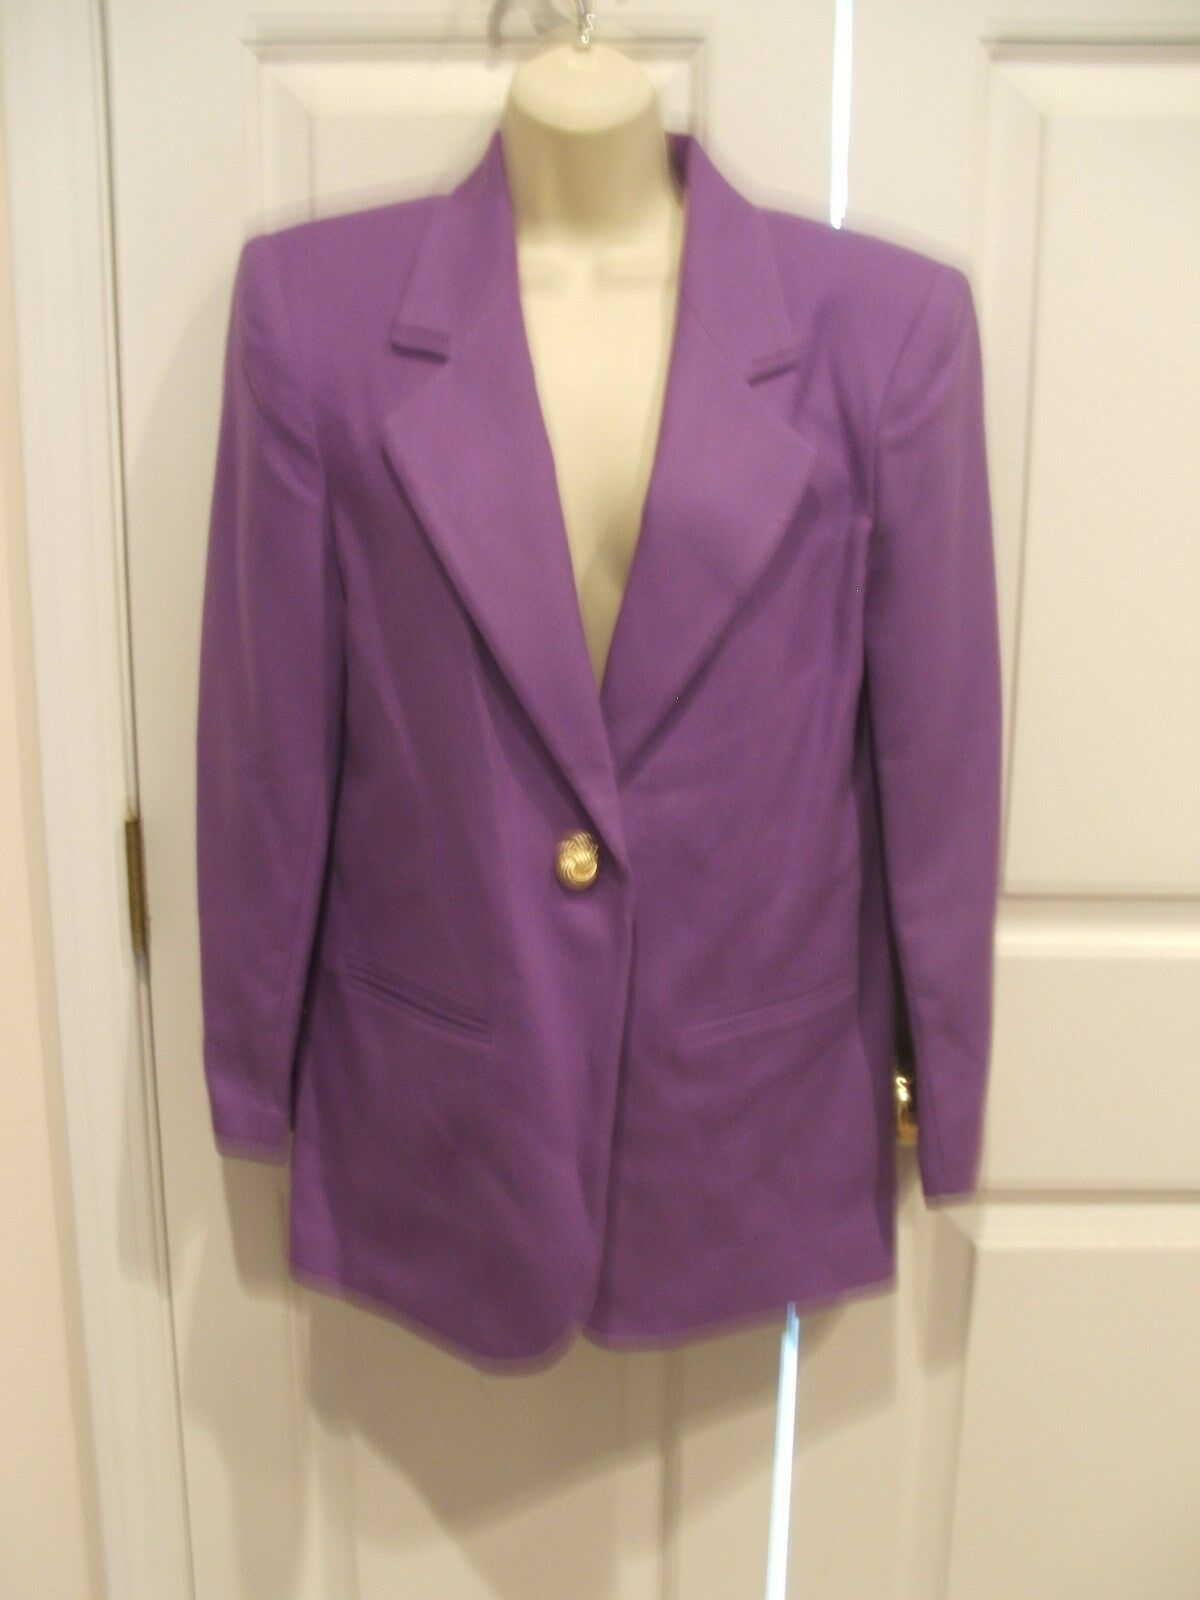 Primary image for NWT $149 SAVANNA  100% WOOL IRIS PURPLE  car coat blazer jacket size 4